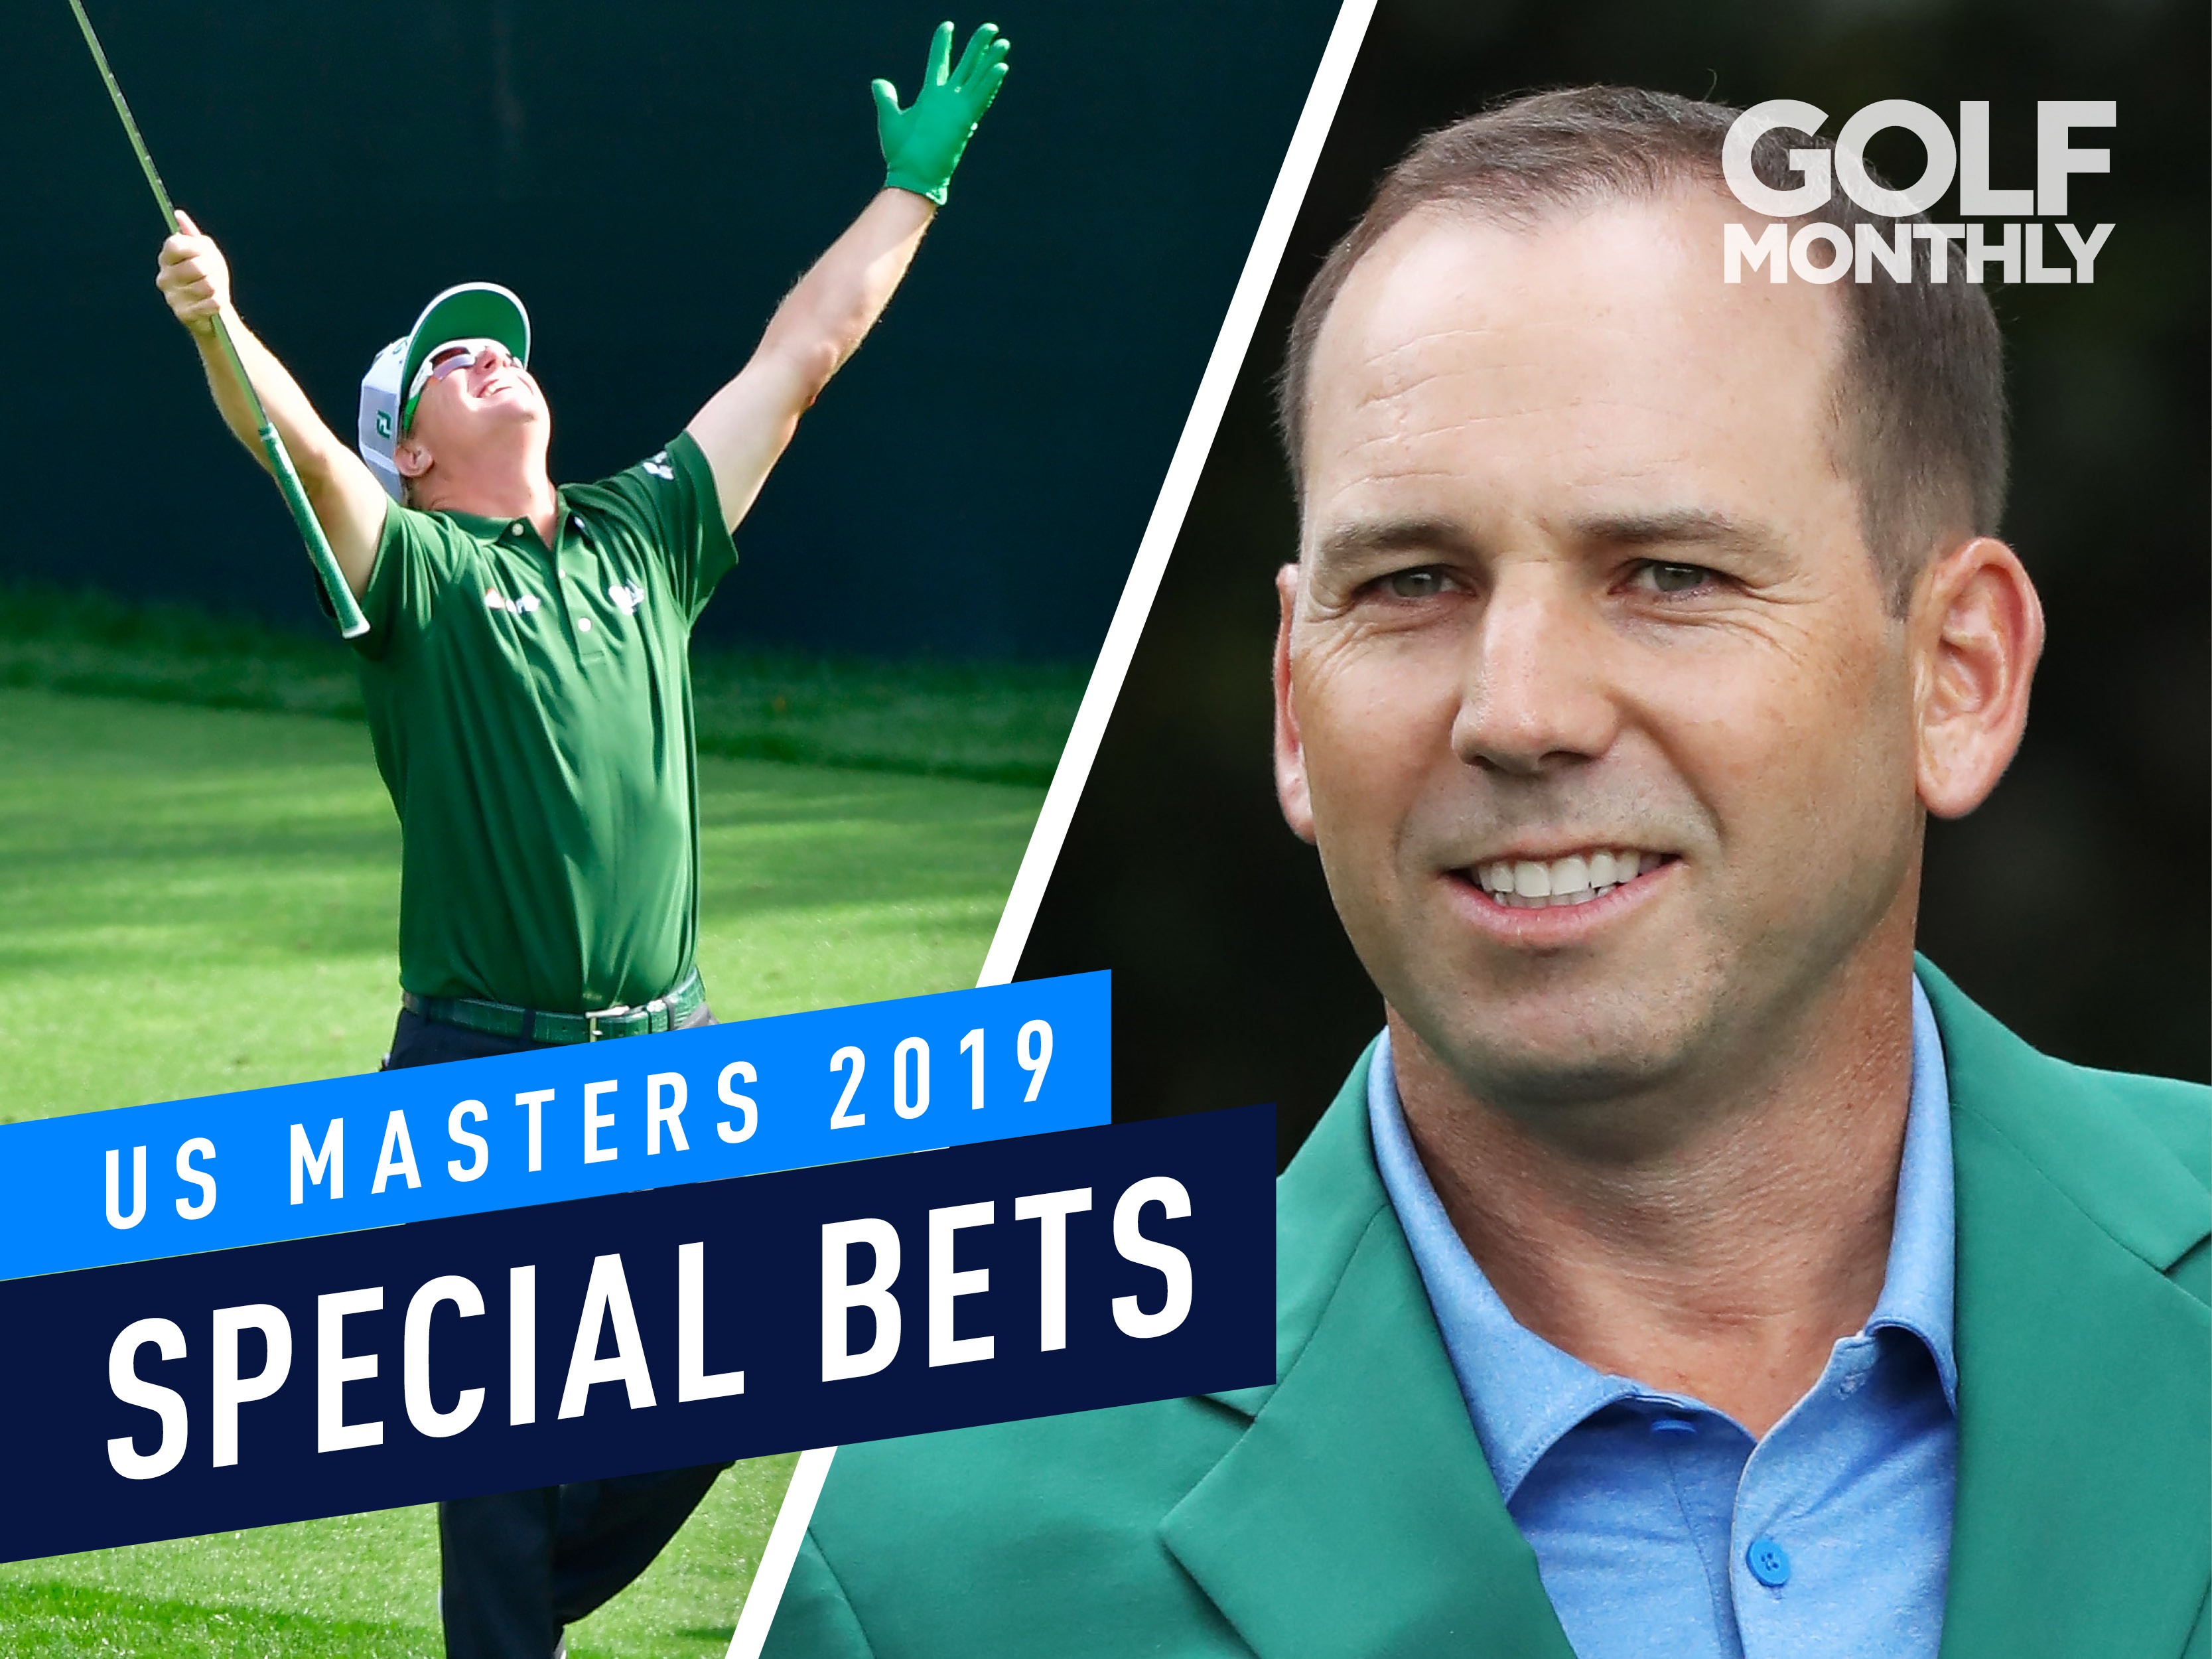 Us masters betting offers cy leinster senior cup betting tips